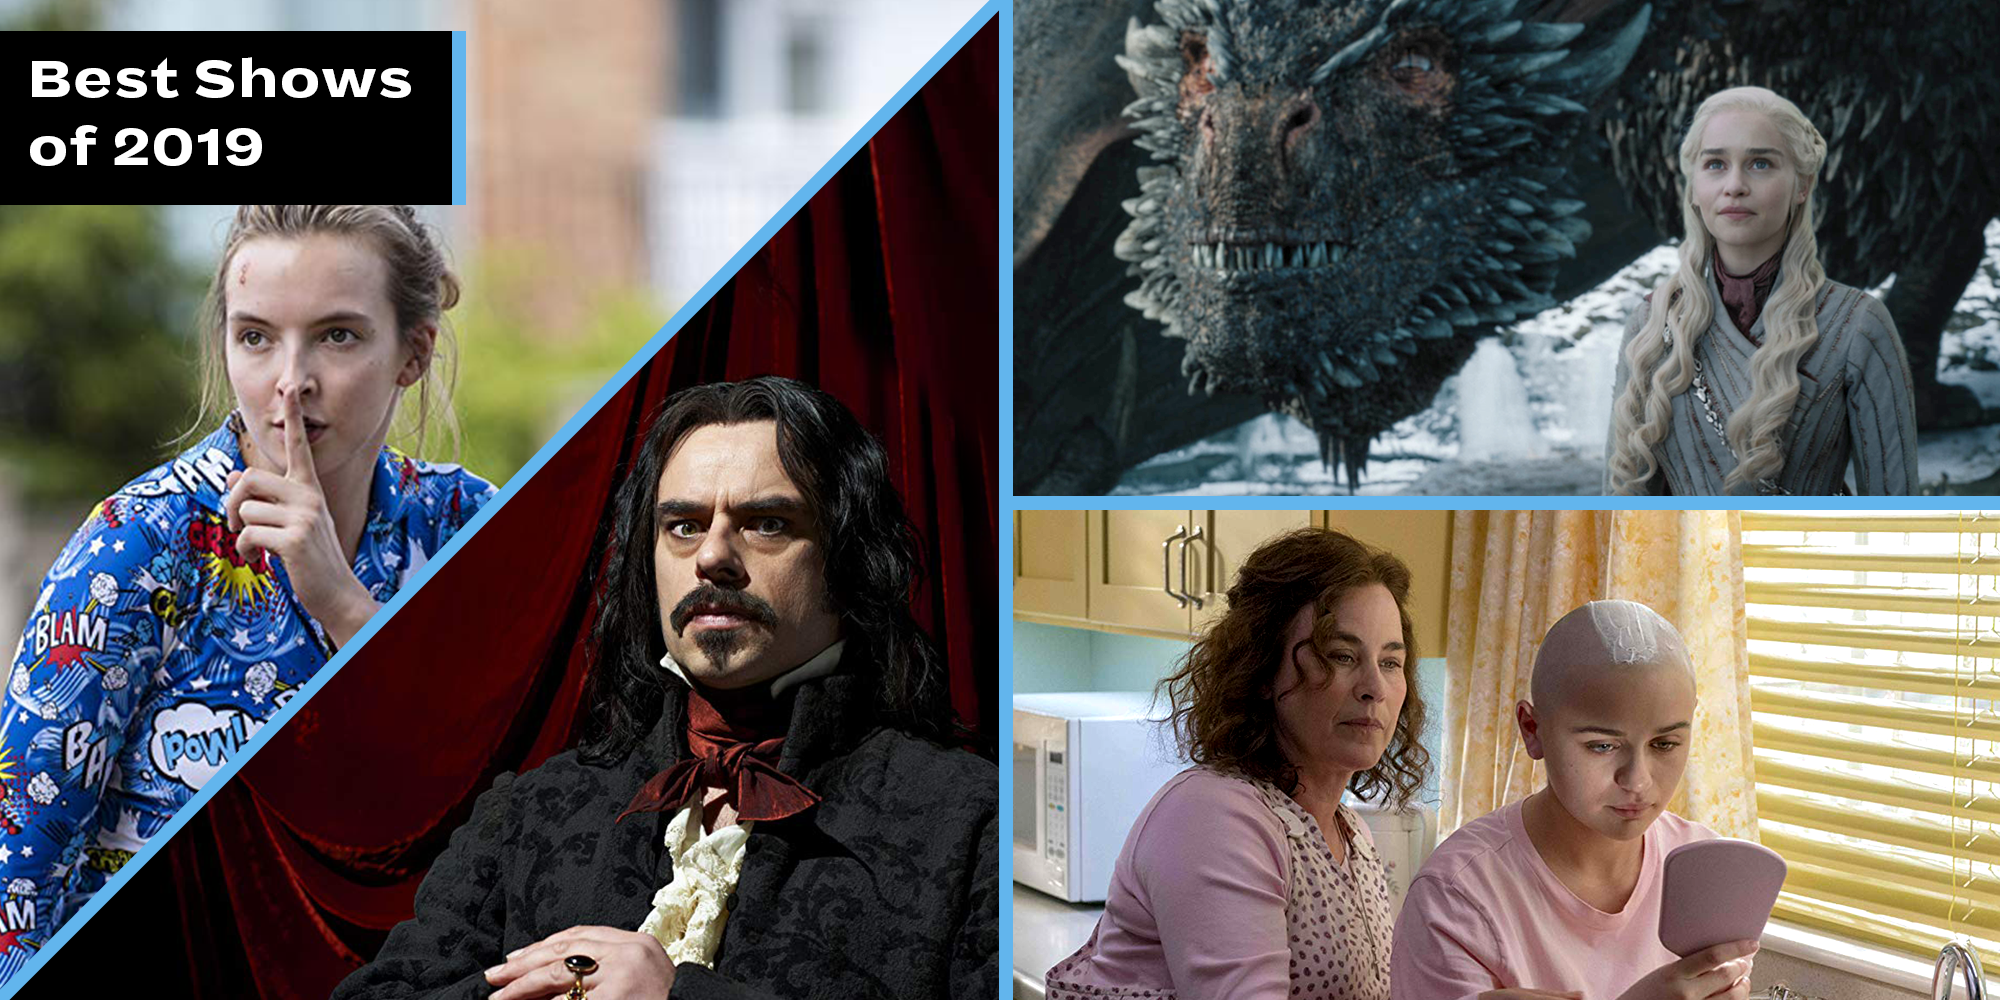 17 Best TV Shows of 2019 (So Far) - Top New Upcoming TV